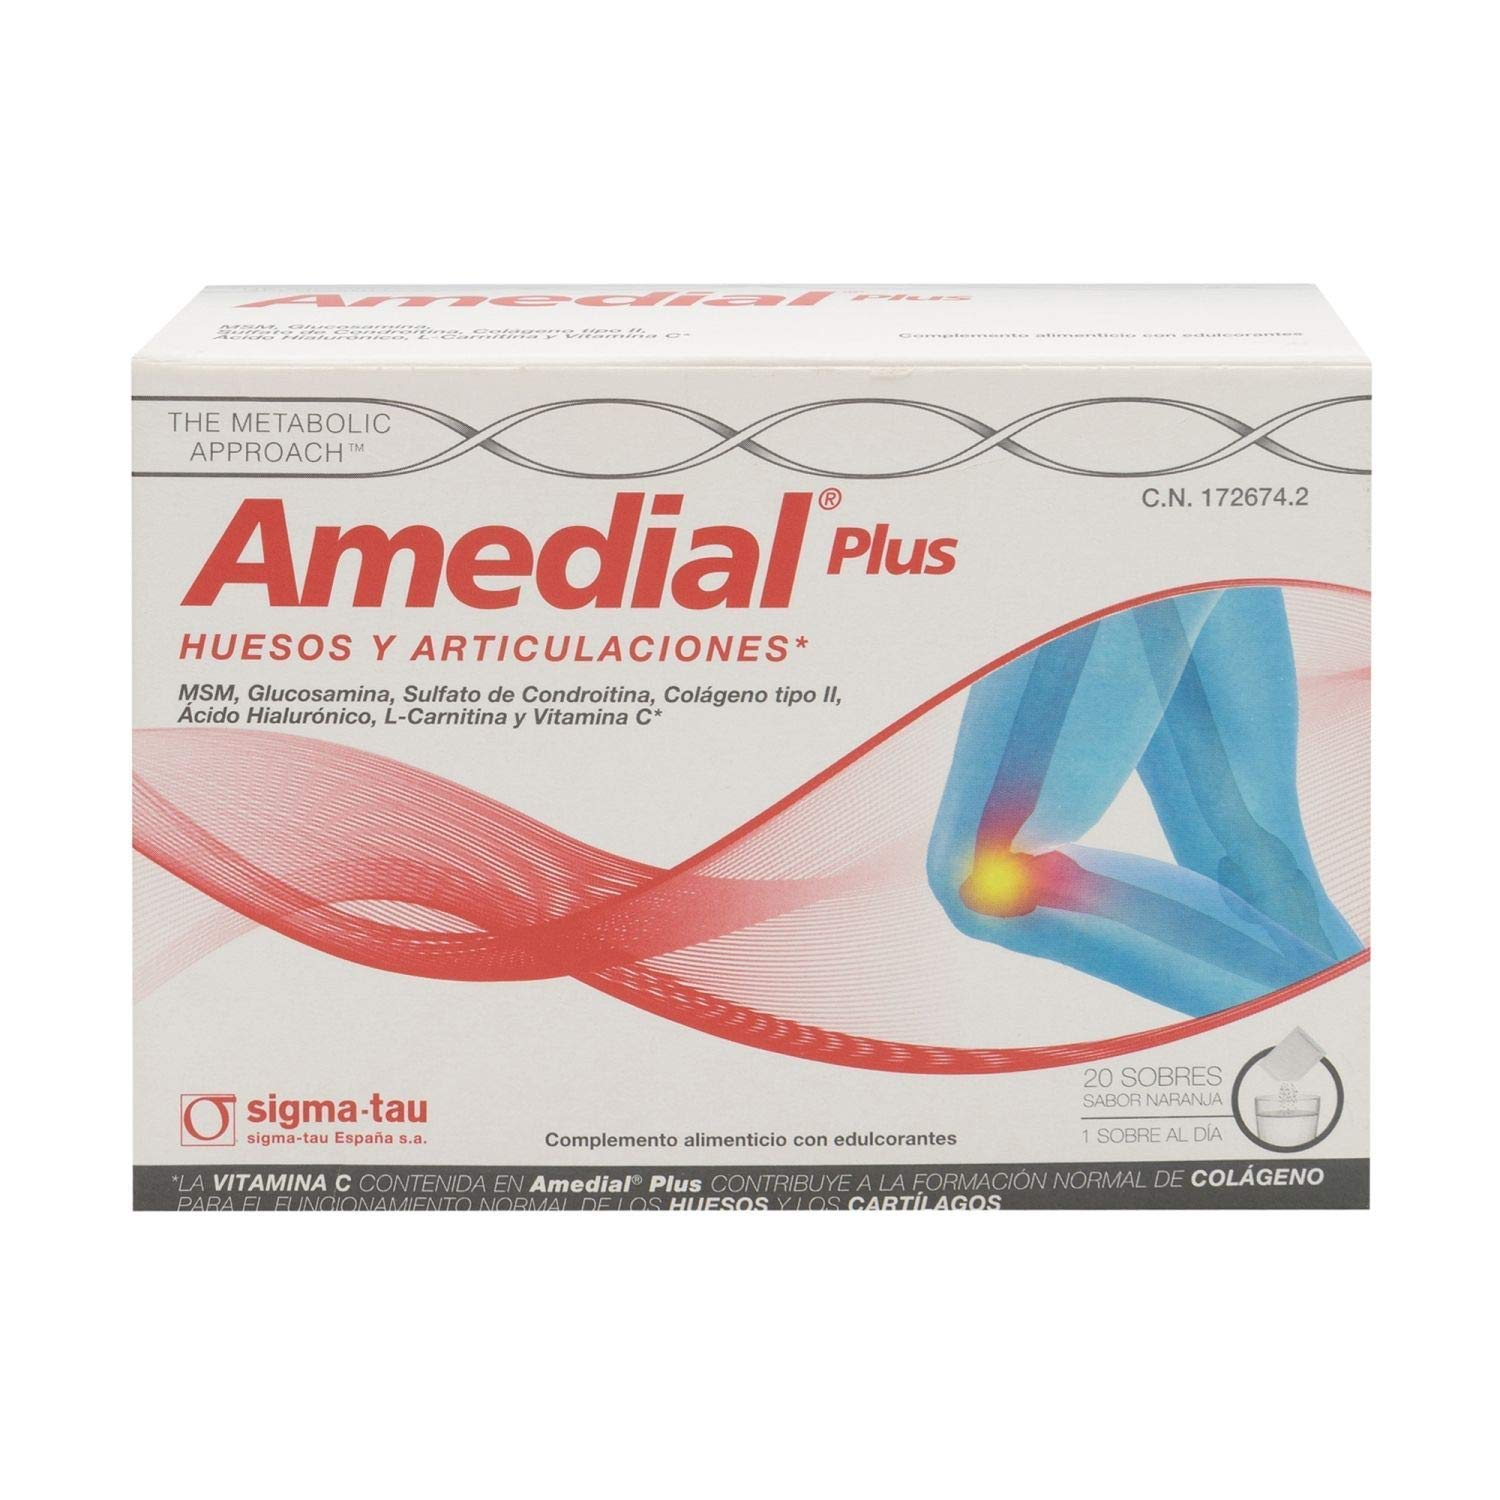 Amazon.com: Sigma Tau Amedial Plus 40 Satchels - Arthritis Treatment - Joint Pain - for Bones and Muscles - Orange Flavor: Health & Personal Care